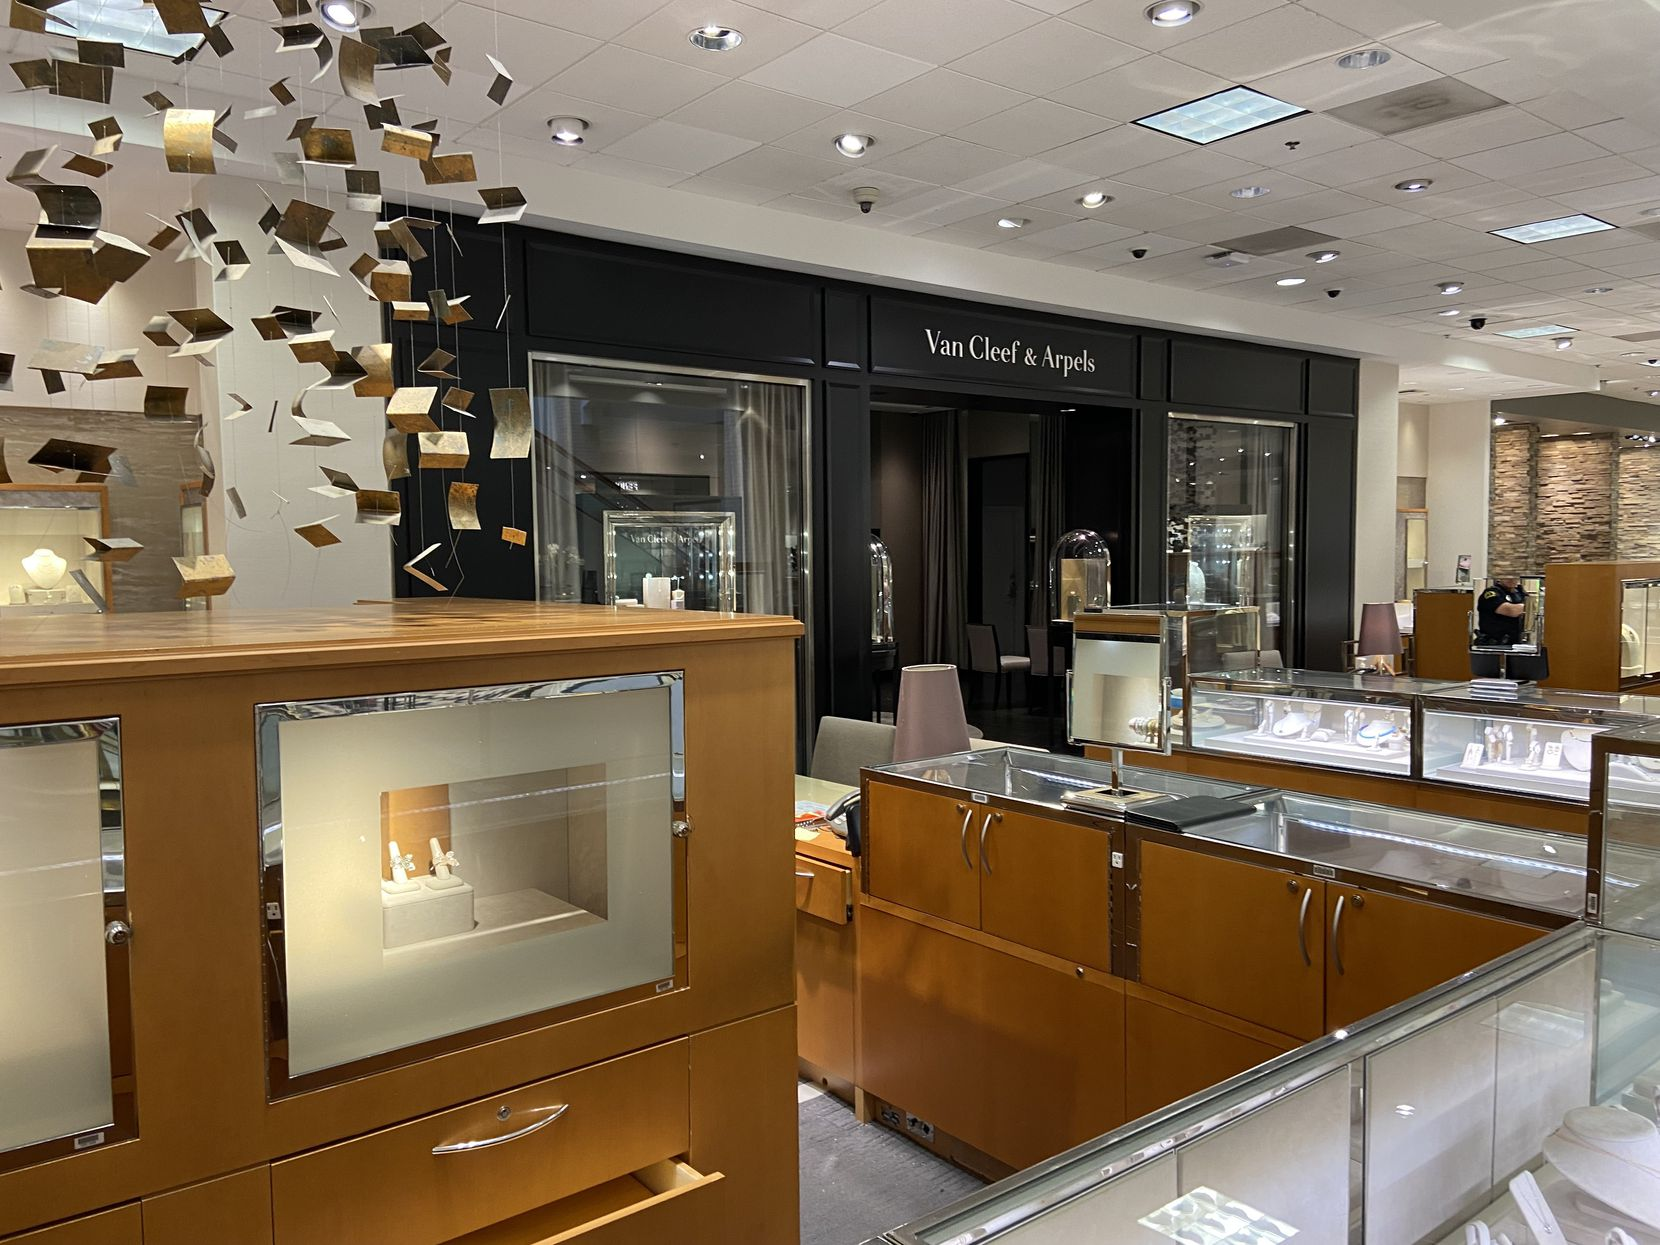 The Van Cleef & Arpels shop on the second level of Neiman Marcus at NorthPark Center in Dallas.